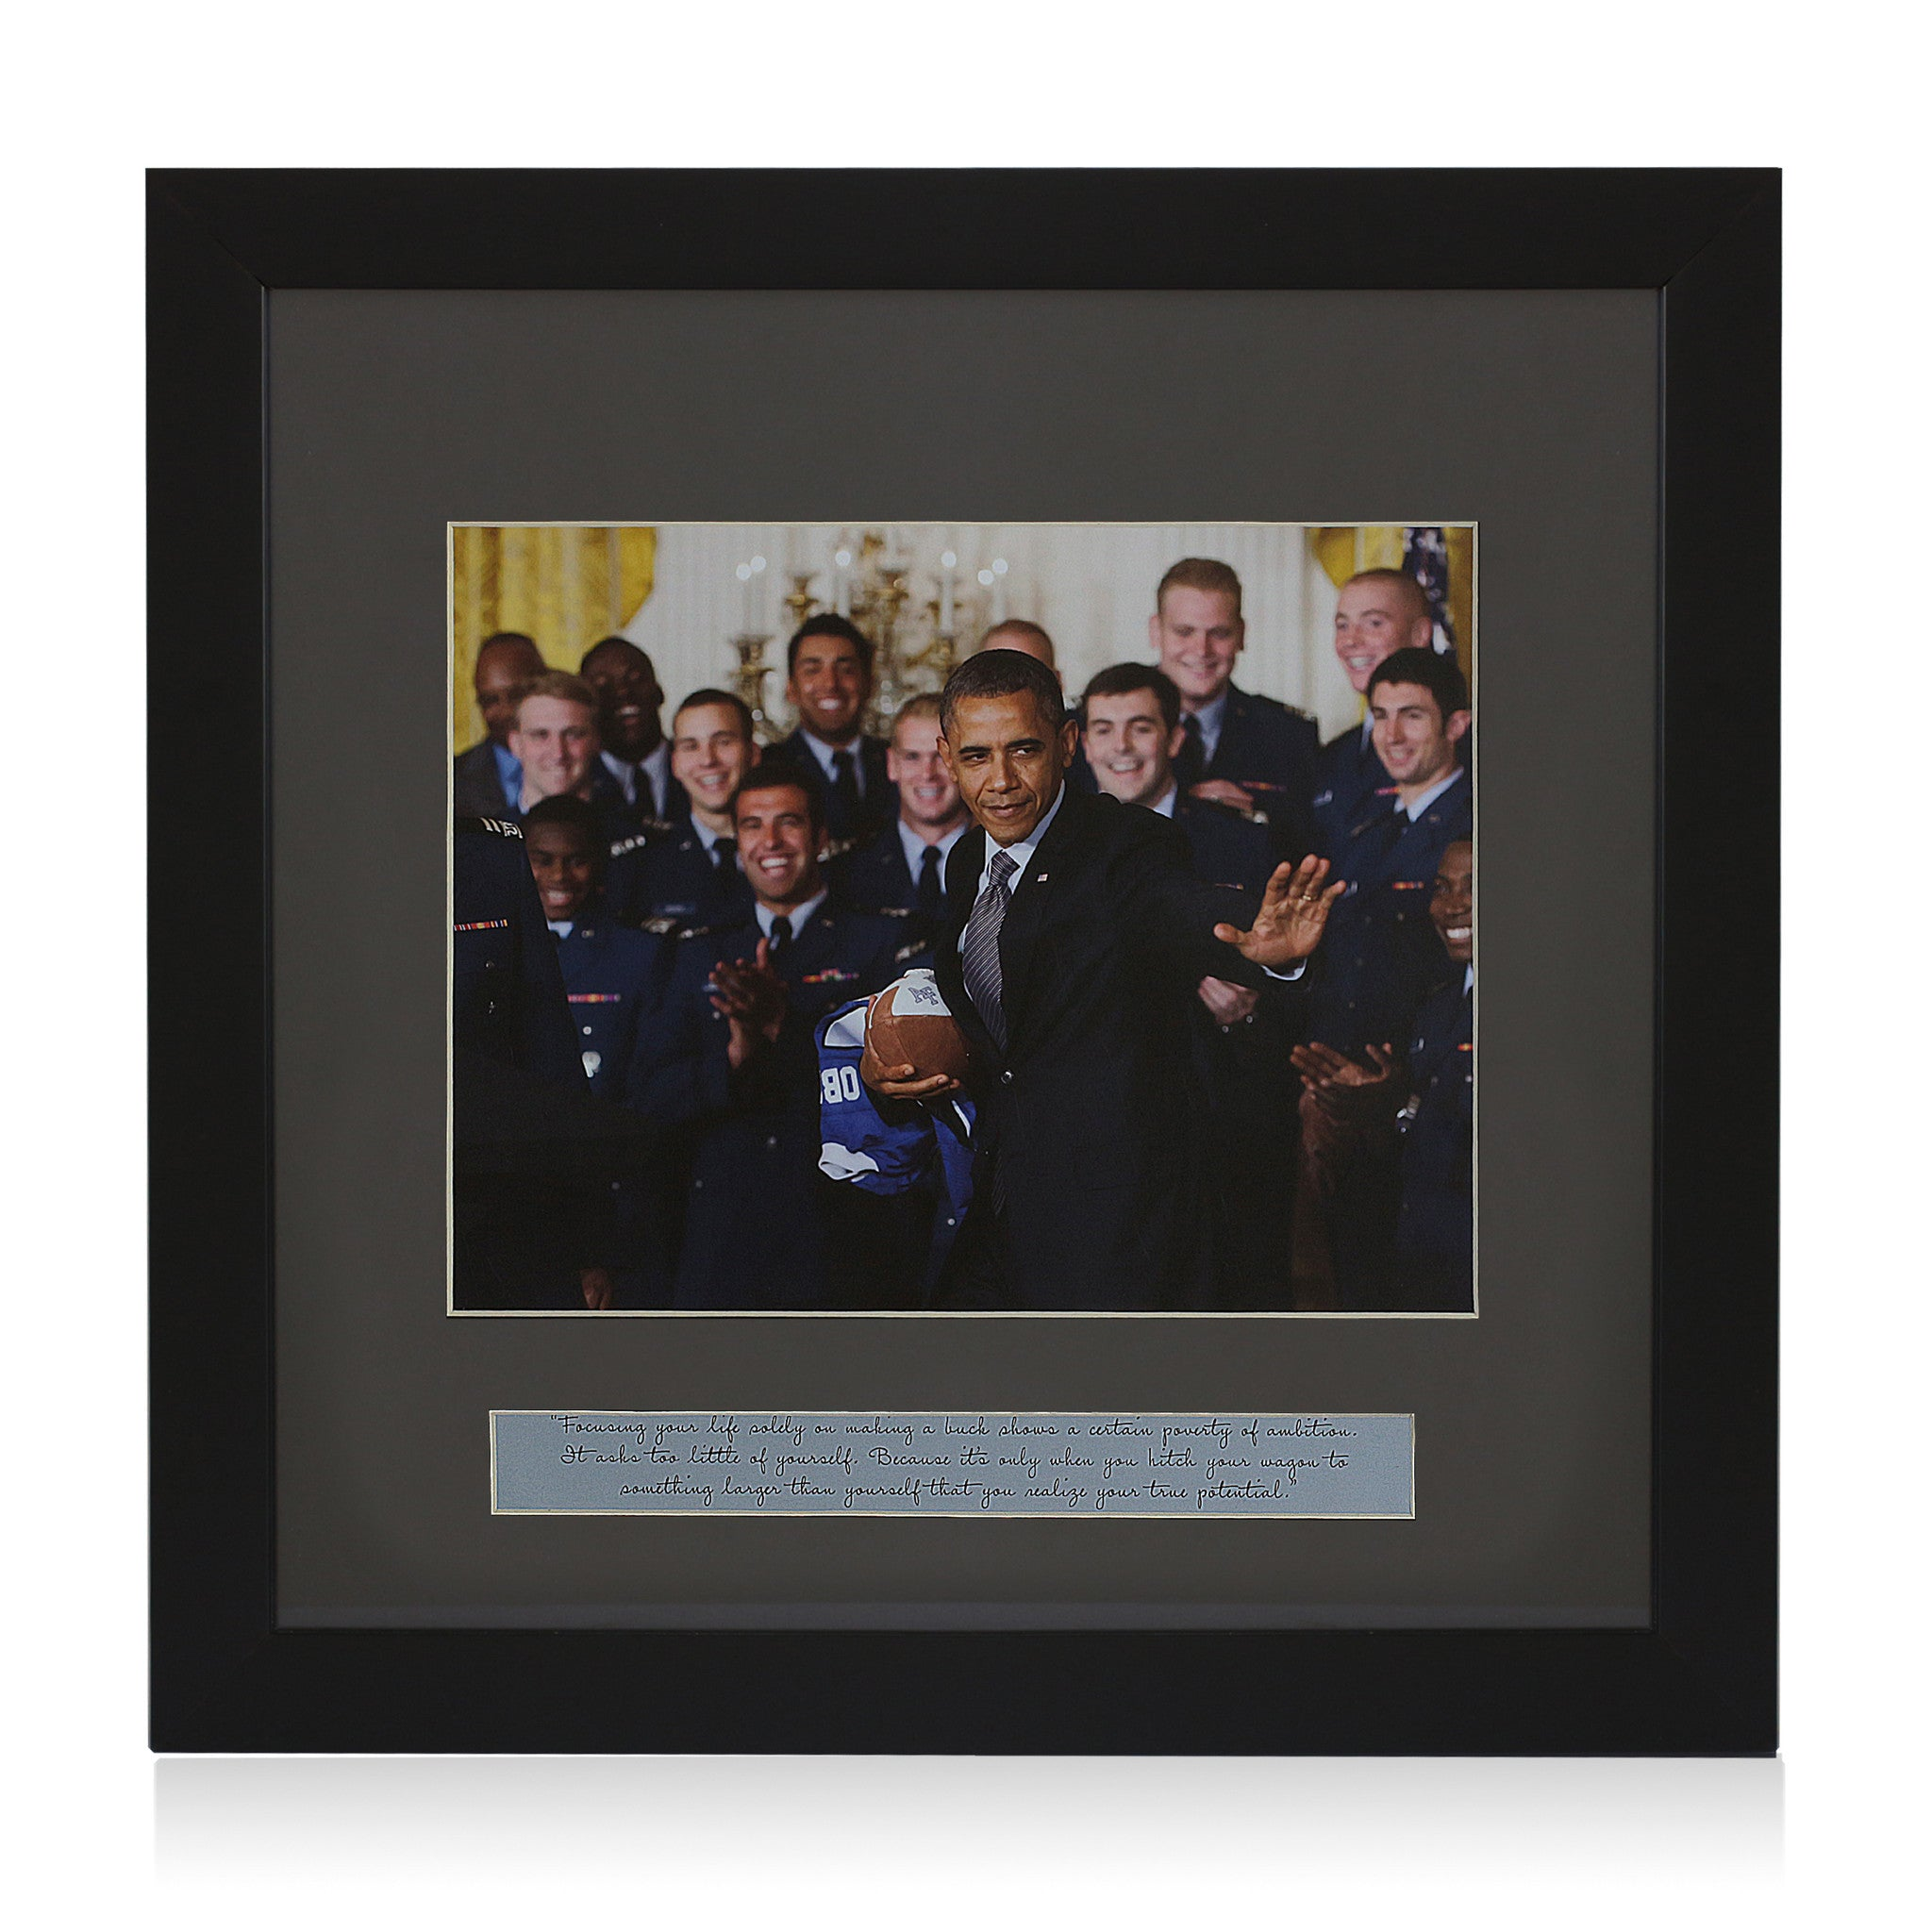 Your True Potential: Barack Obama (Framed Art Print)